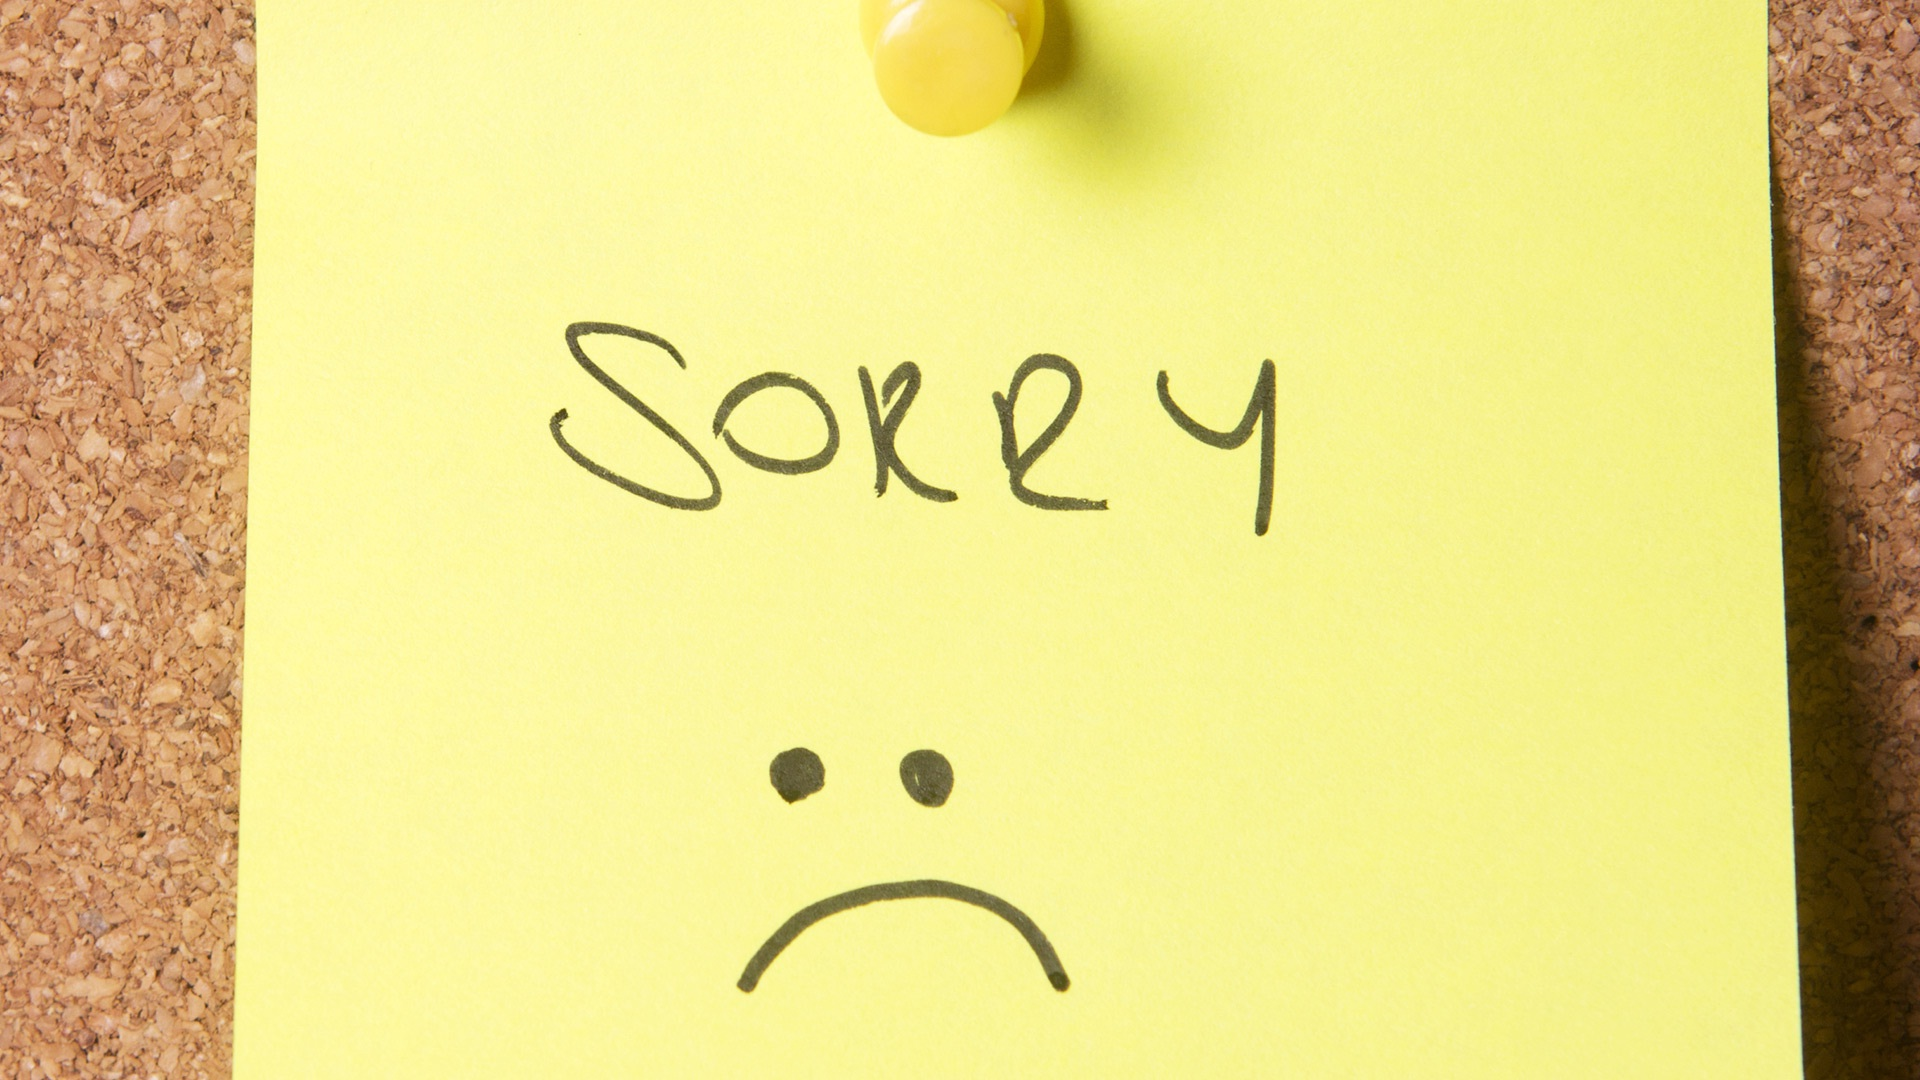 Sorry Wallpaper Images For Free Download 1920x1080